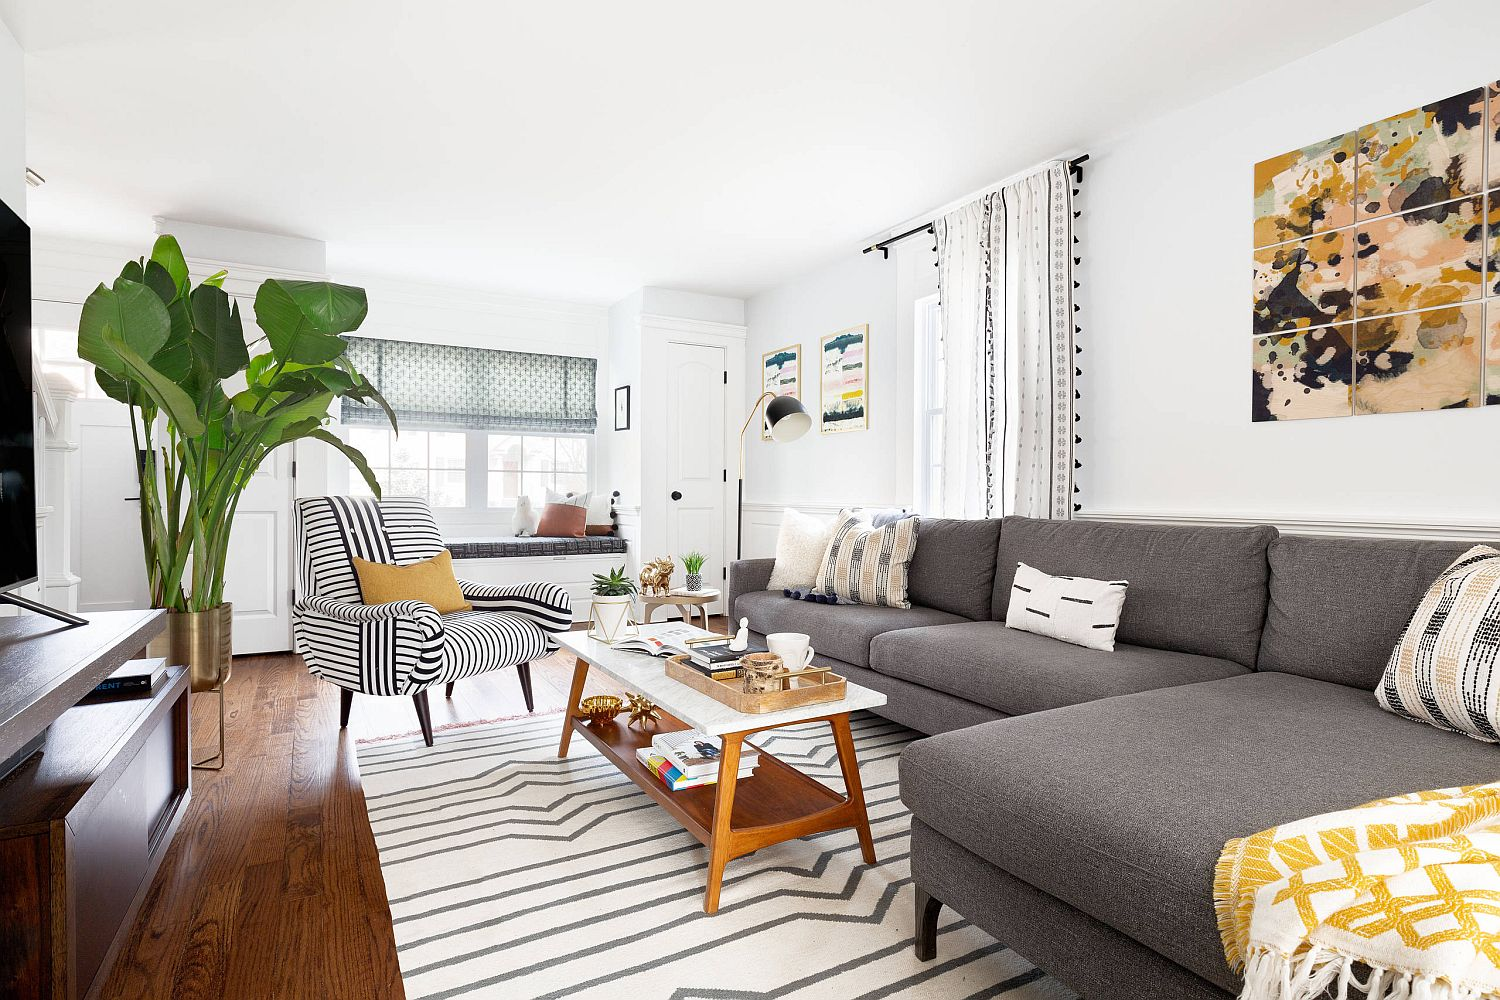 Interesting-use-of-multiple-stripes-on-the-accent-chair-along-with-the-rug-give-this-contemporary-living-room-a-snazzy-appeal-13063